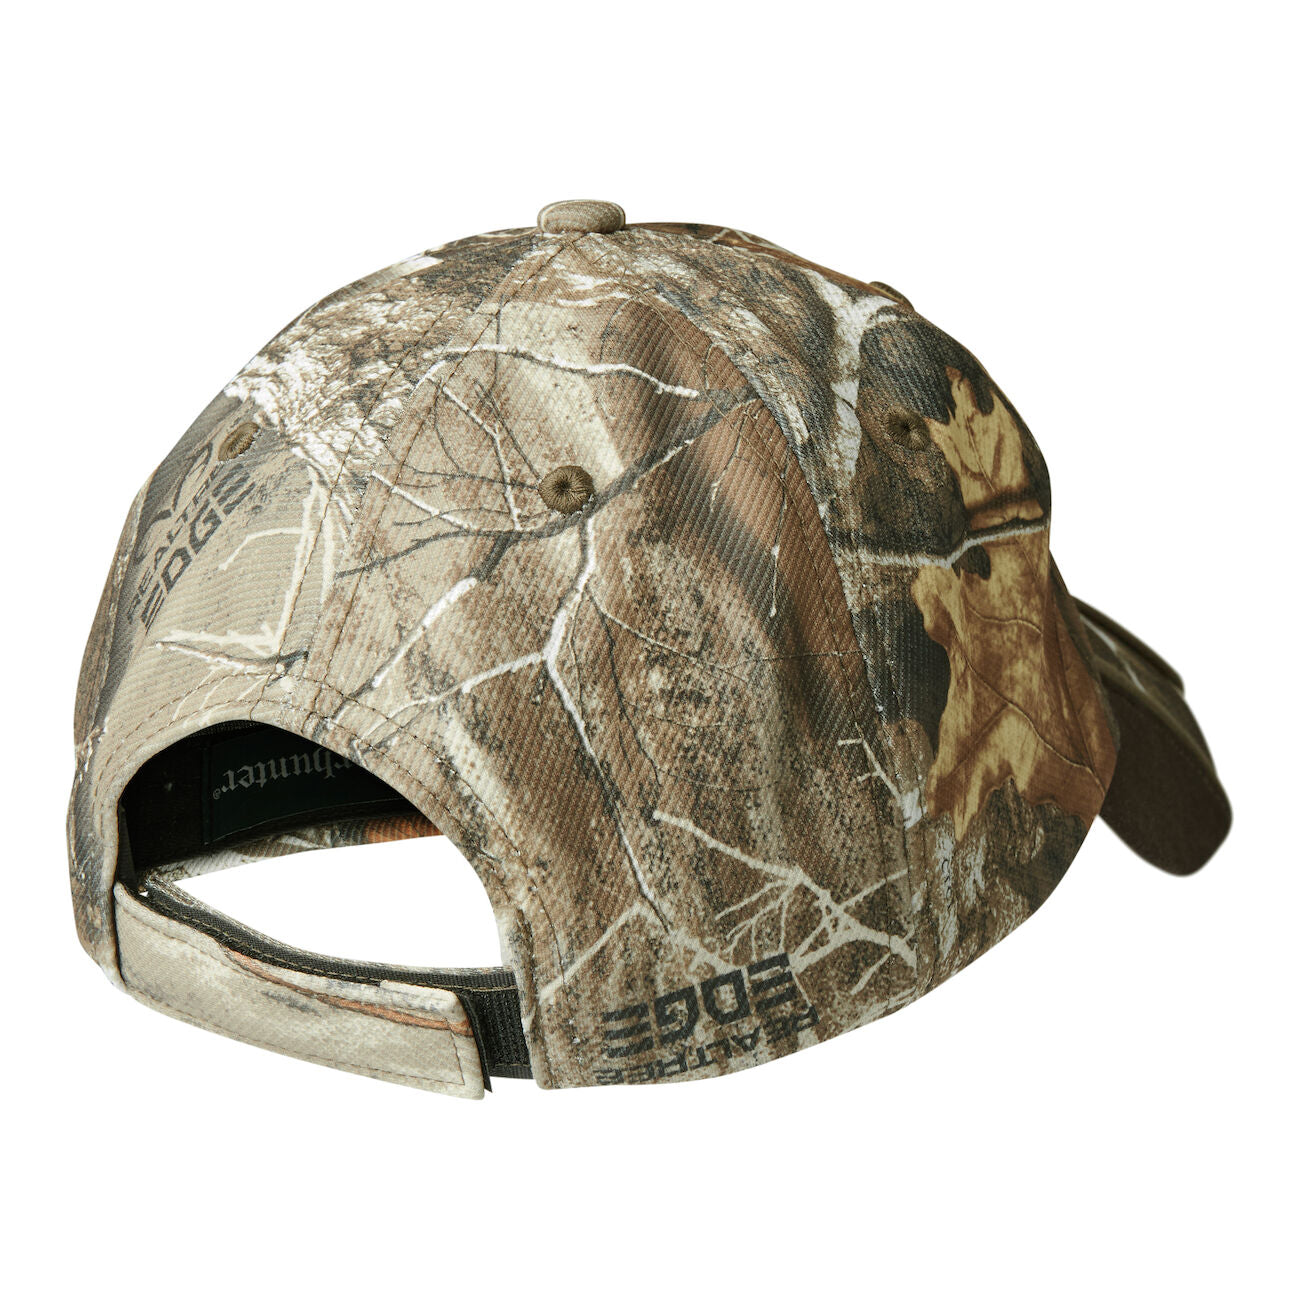 Deerhunter Muflon Cap - Realtree Edge - One Size